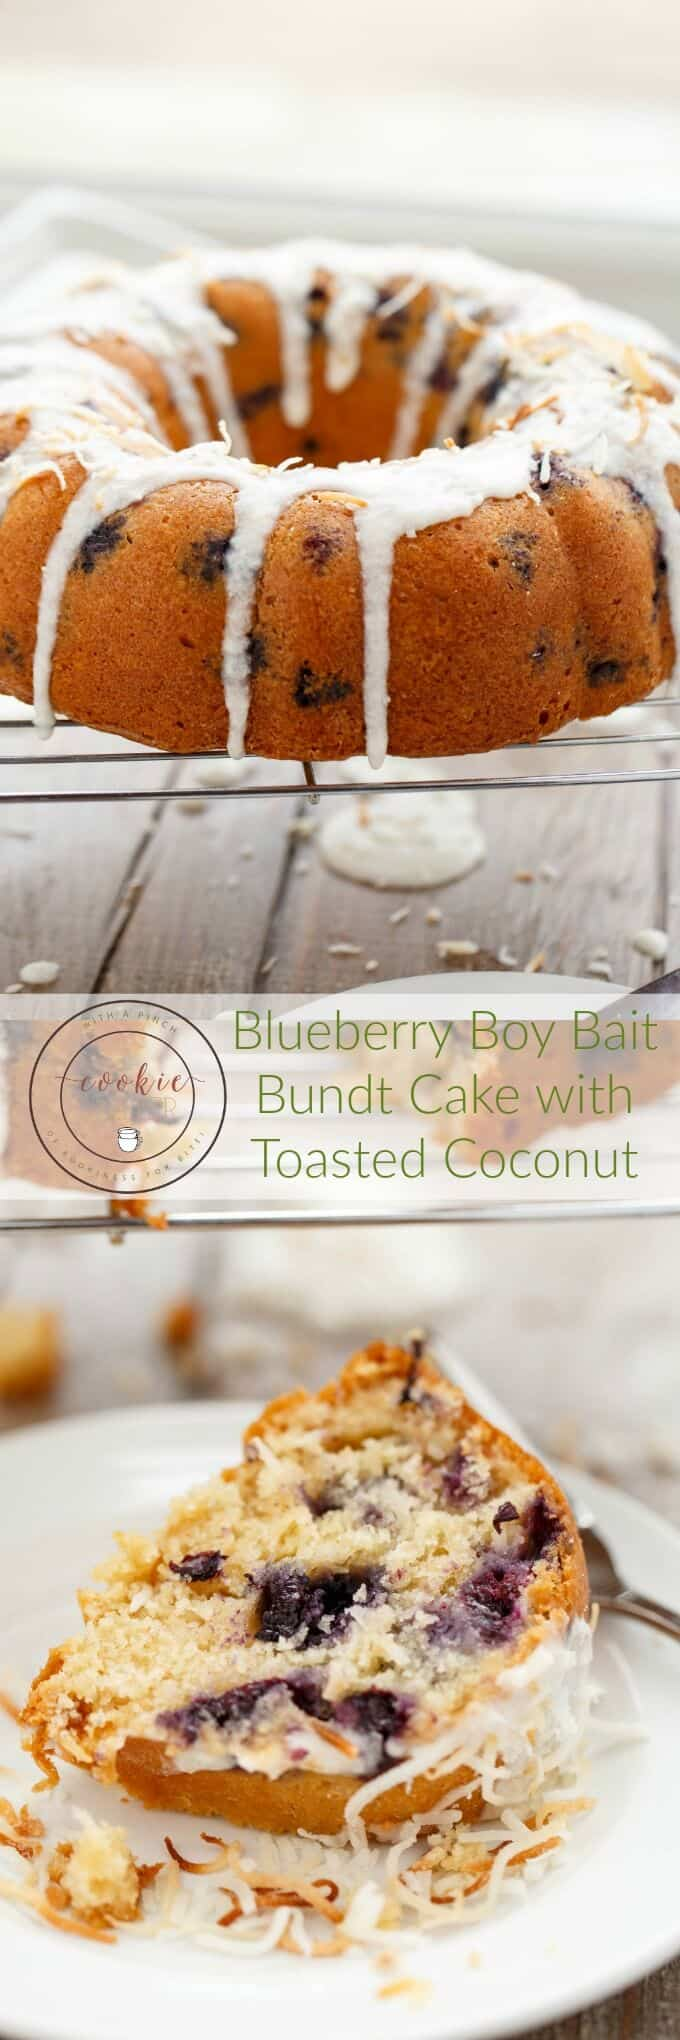 Blueberry Boy Bait Bundt Cake with Toasted Coconut